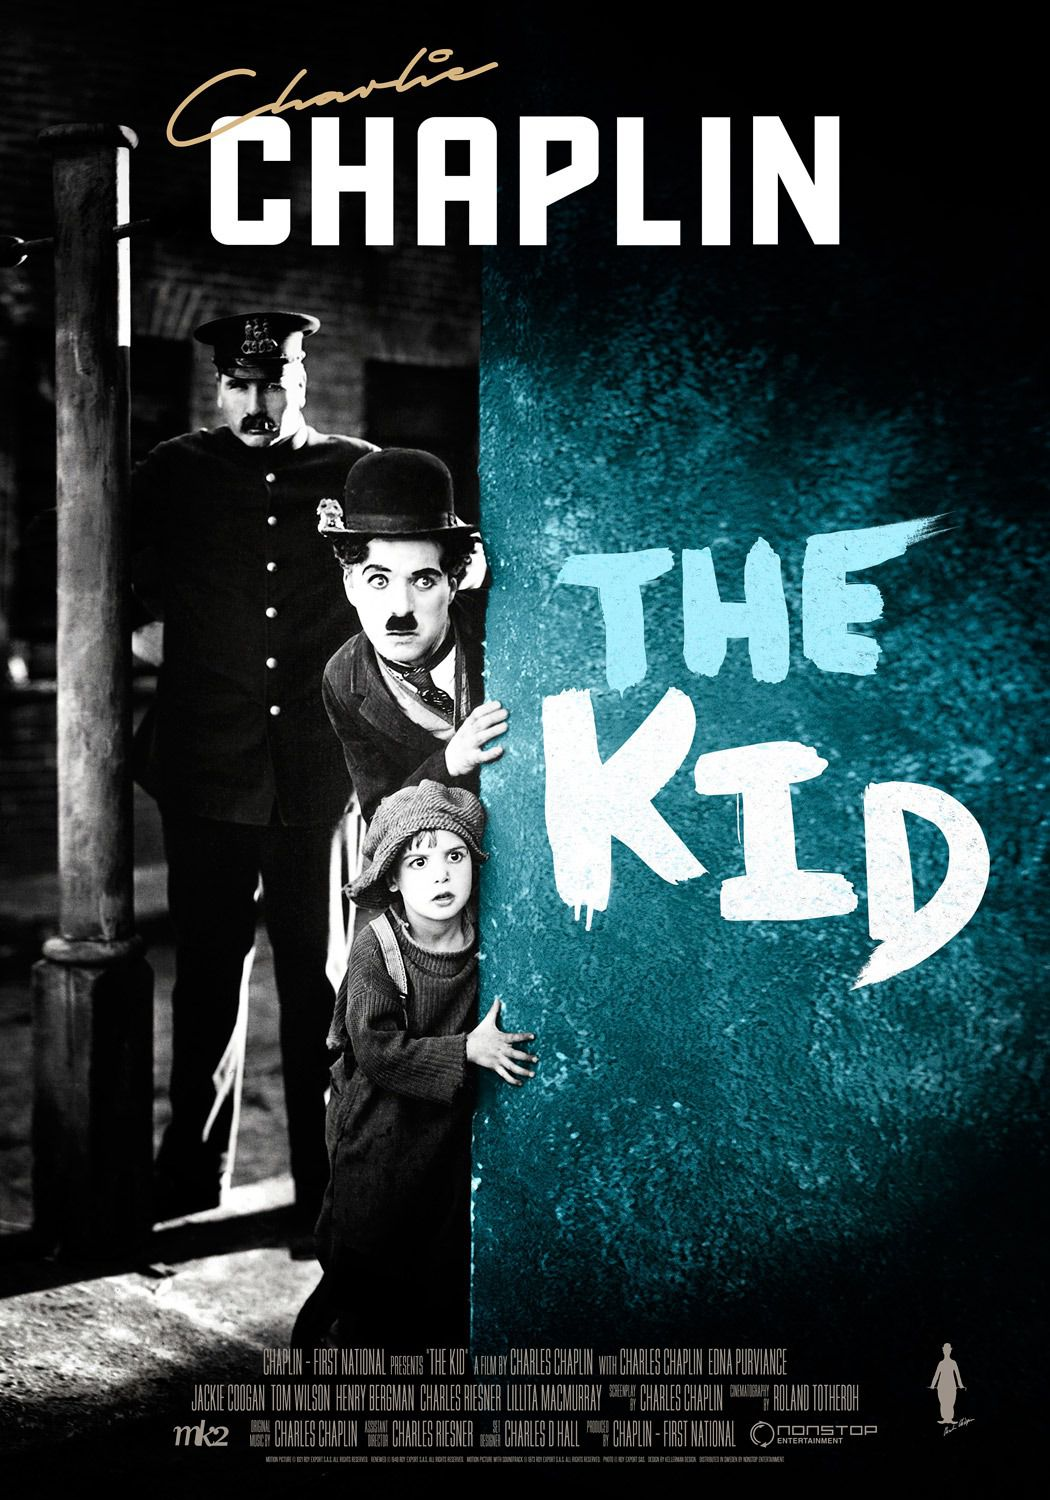 Film - Charlie Chaplin - 1921 - The Kid - il Monello - old poster